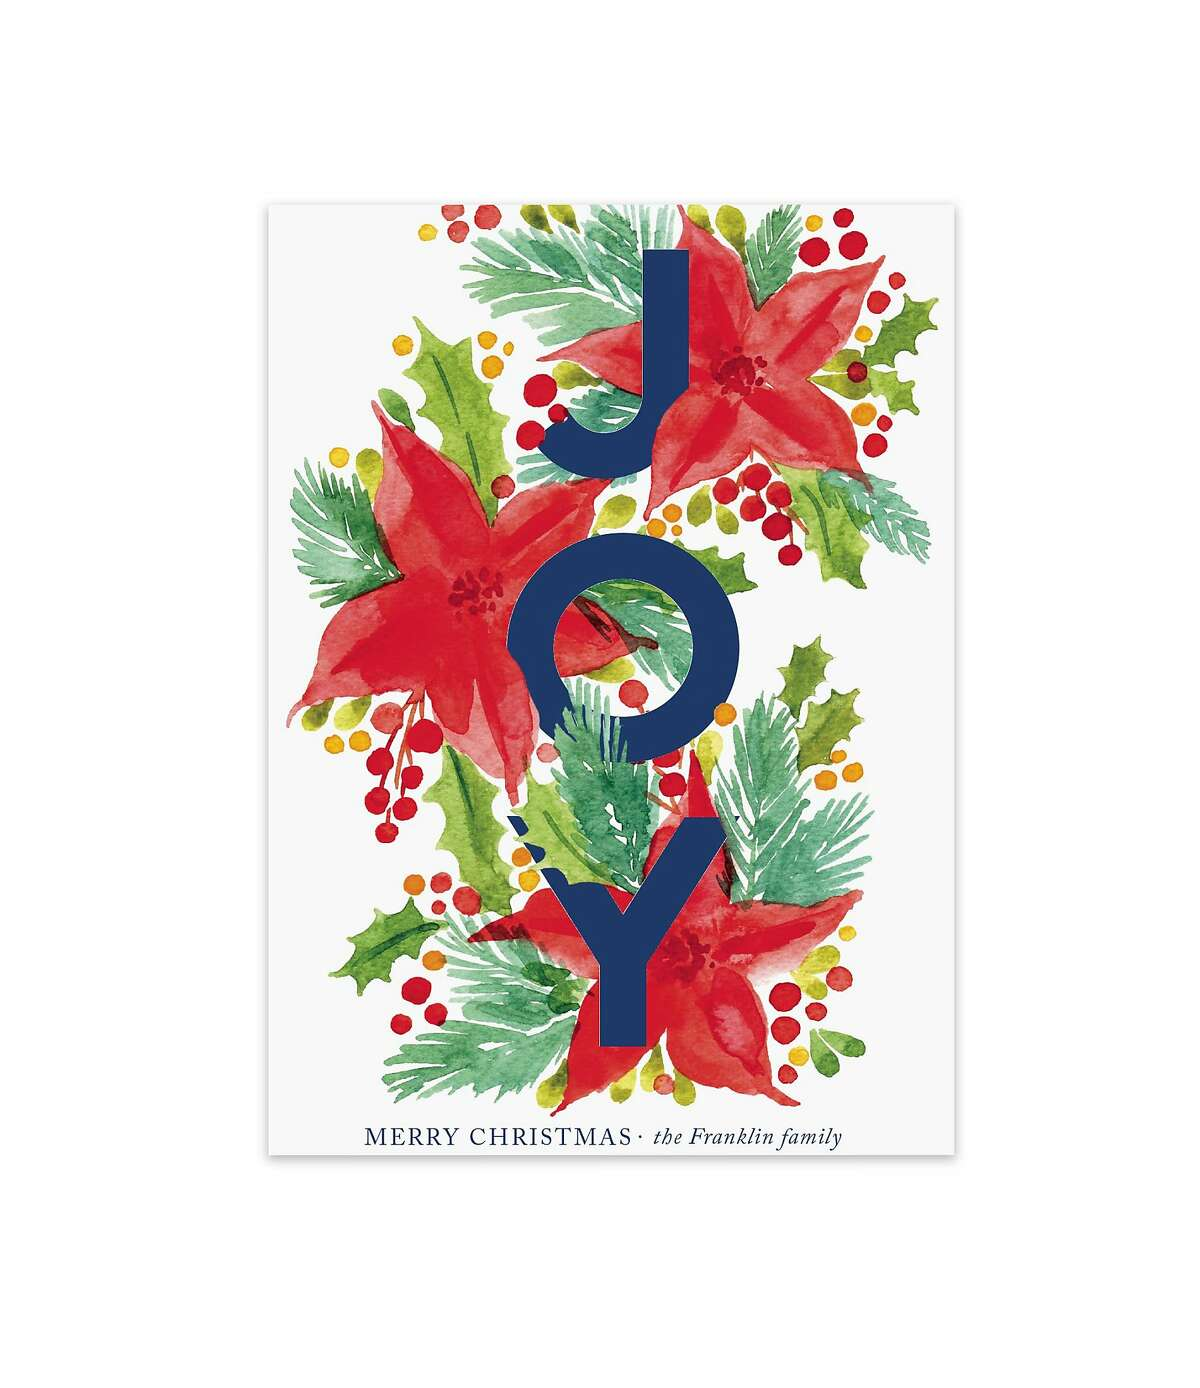 Holiday cards curated by Lady Gaga's Born This Way Foundation, and created by artists working with Minted, are available in packages of 100 cards, and ranging from $167 to $205, depending on design. Seen here: the